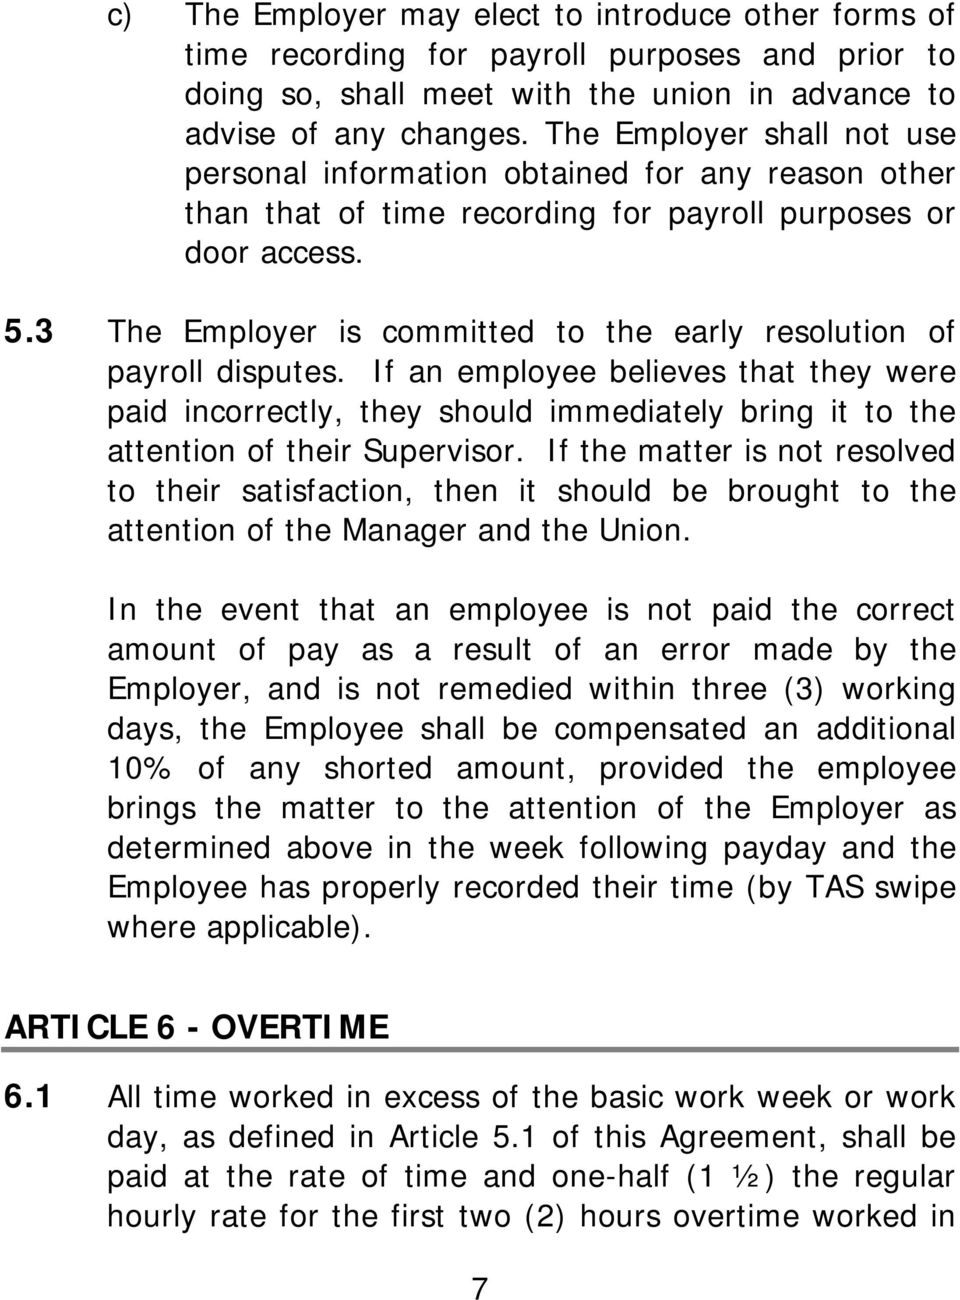 3 The Employer is committed to the early resolution of payroll disputes. If an employee believes that they were paid incorrectly, they should immediately bring it to the attention of their Supervisor.